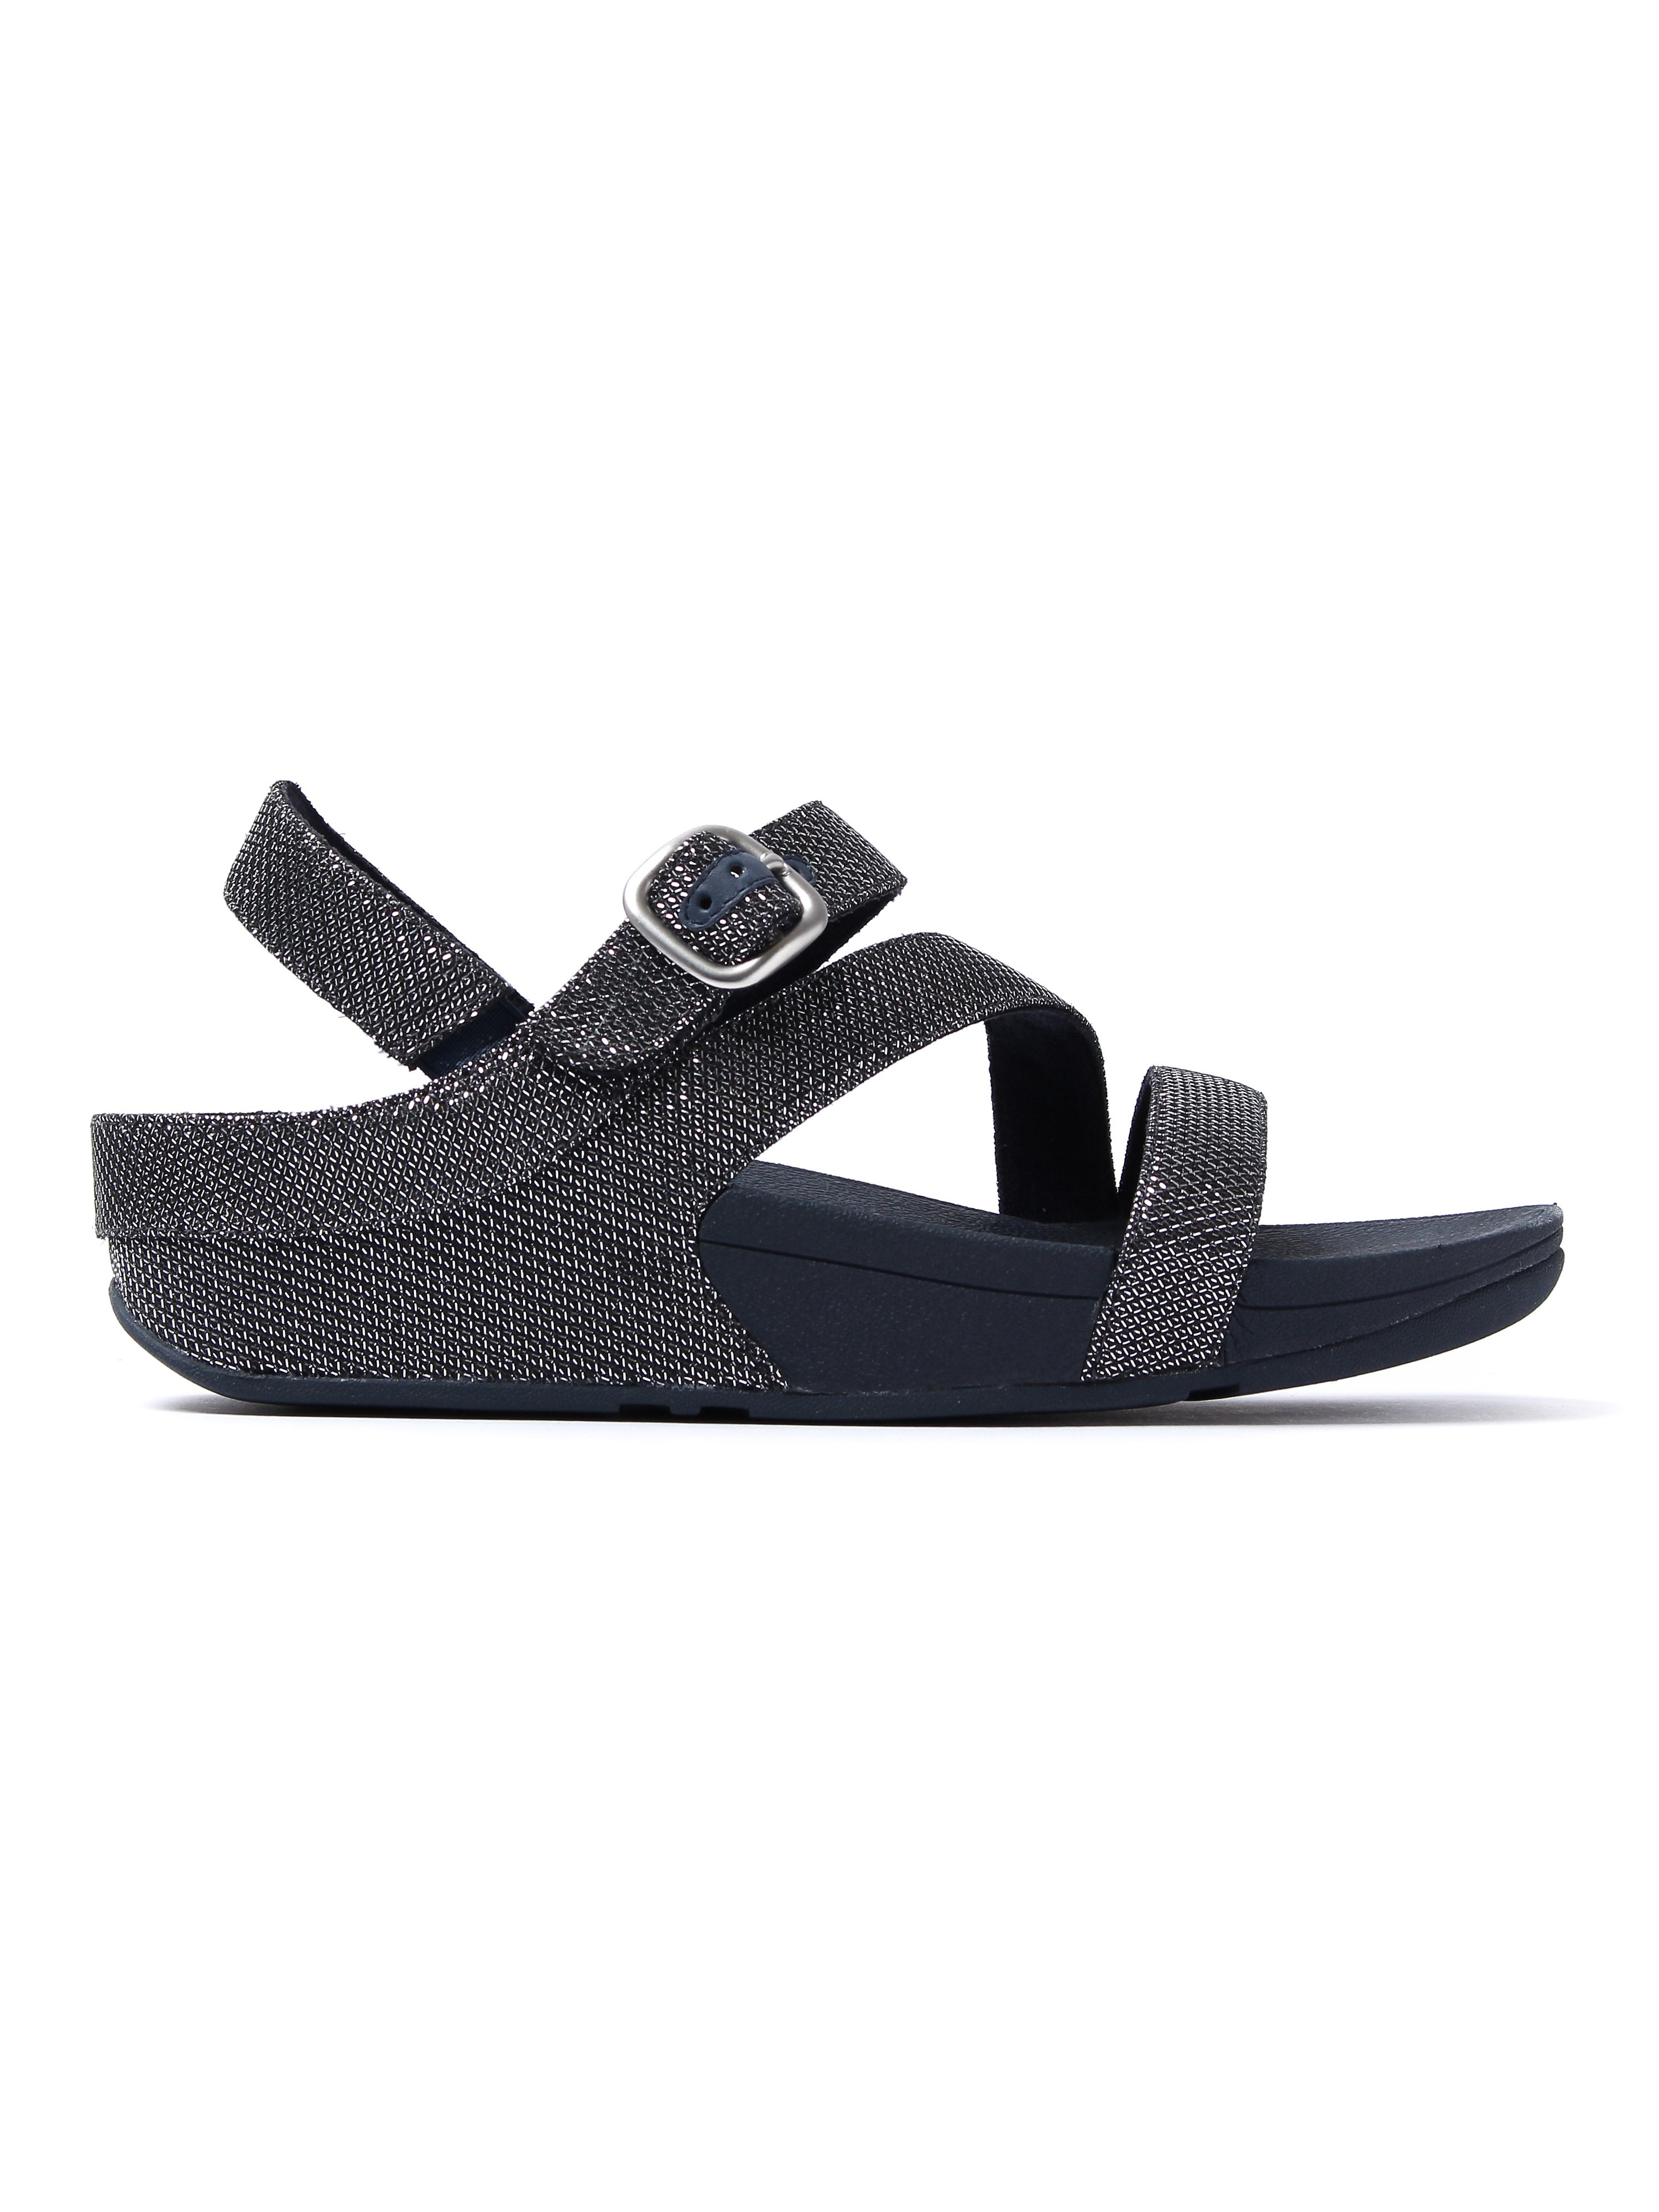 FitFlop Women's The Skinny Sparkle Z-Strap Sandals - Supernavy